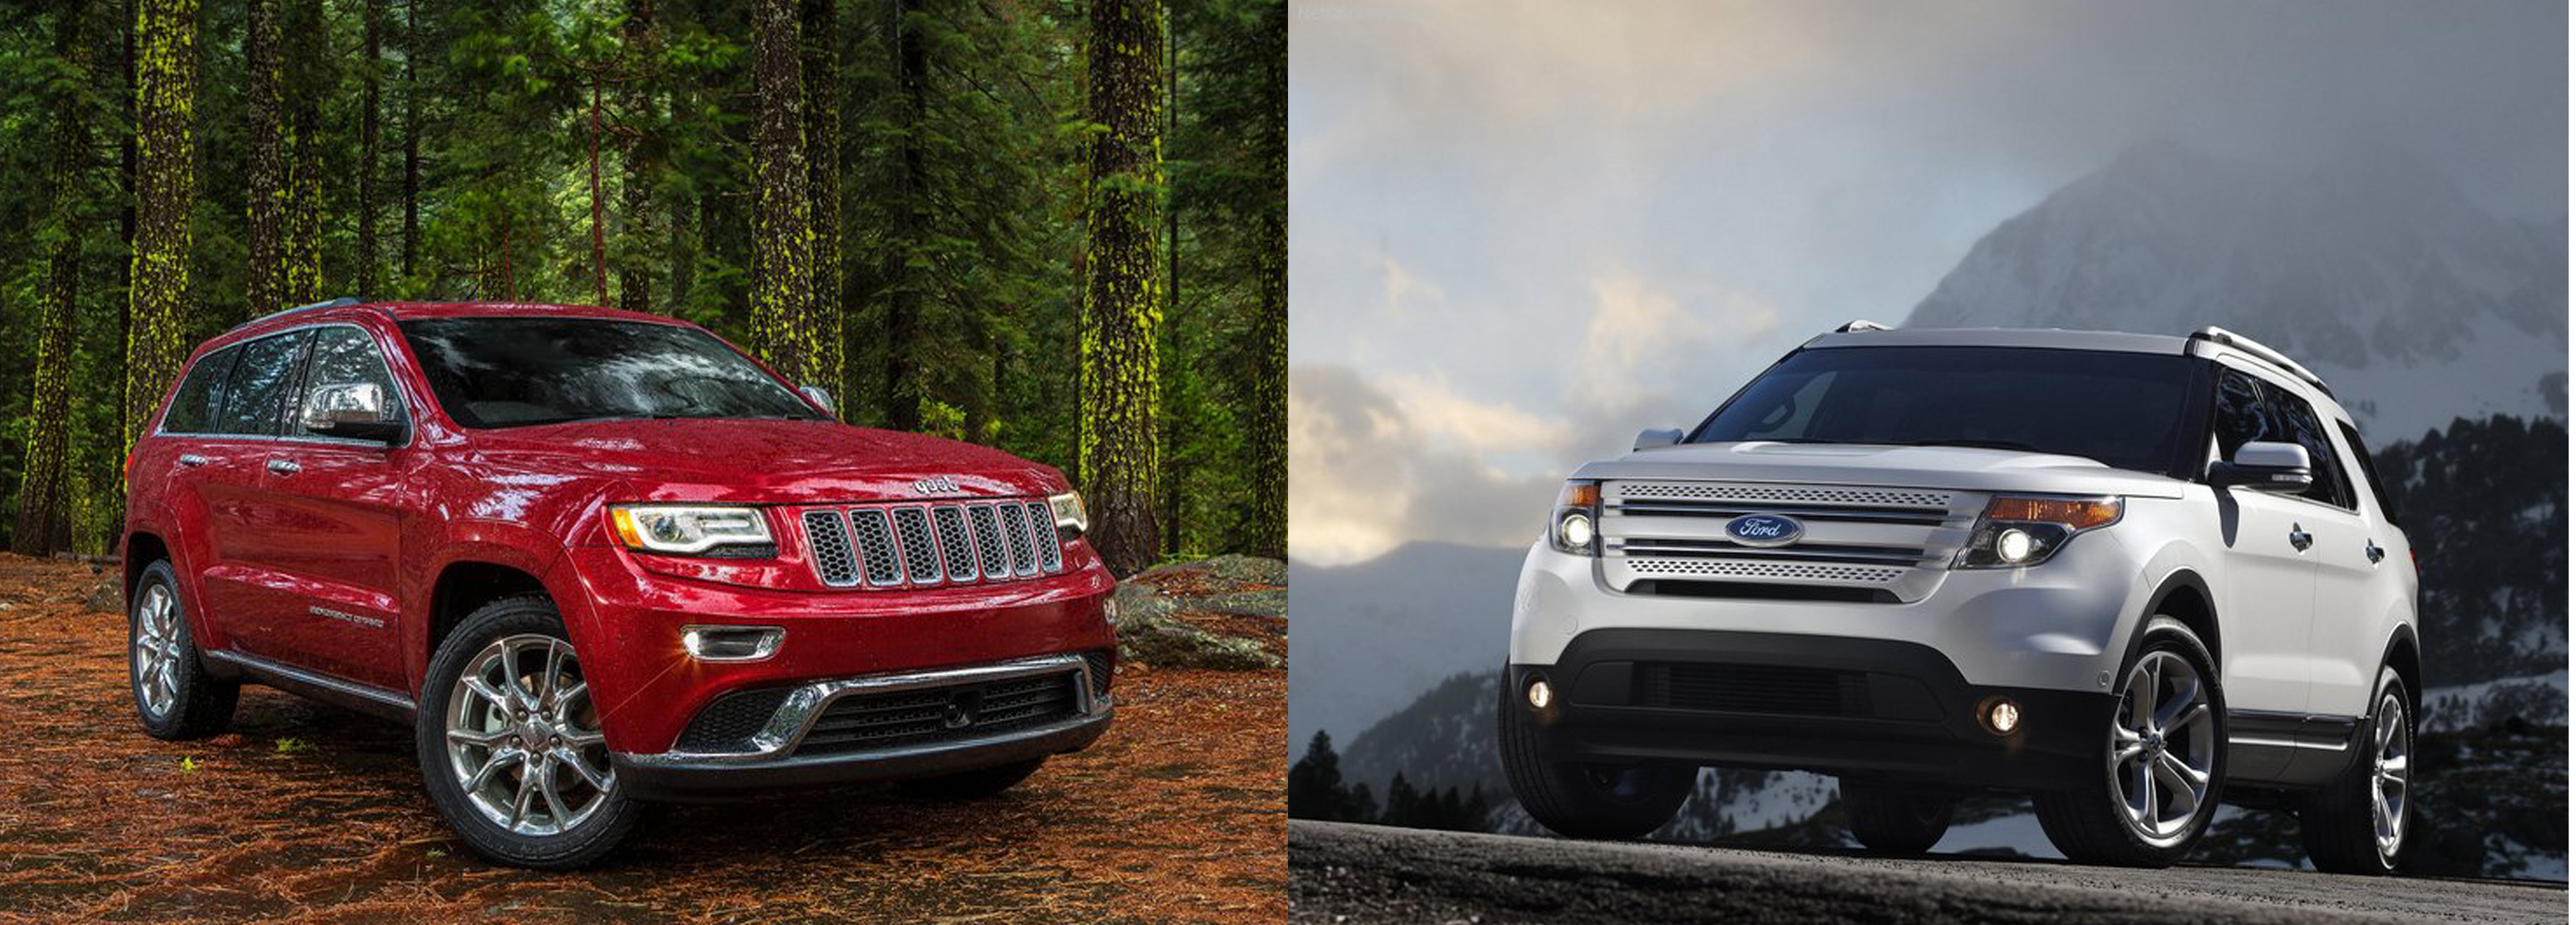 Jeep Grand Cherokee or Ford Explorer